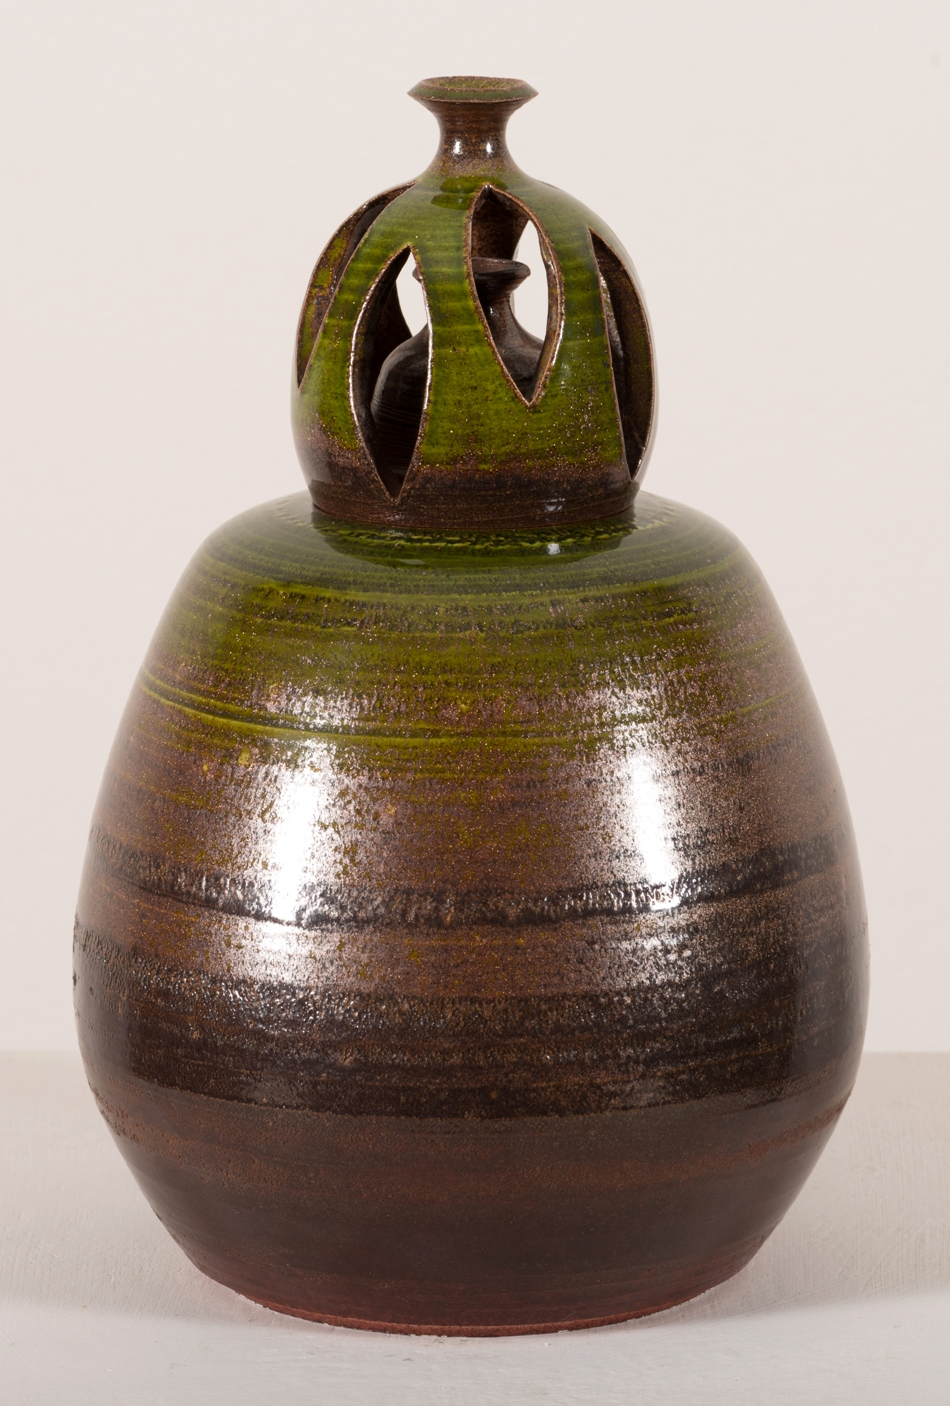 James Spires, Antique Green Urn